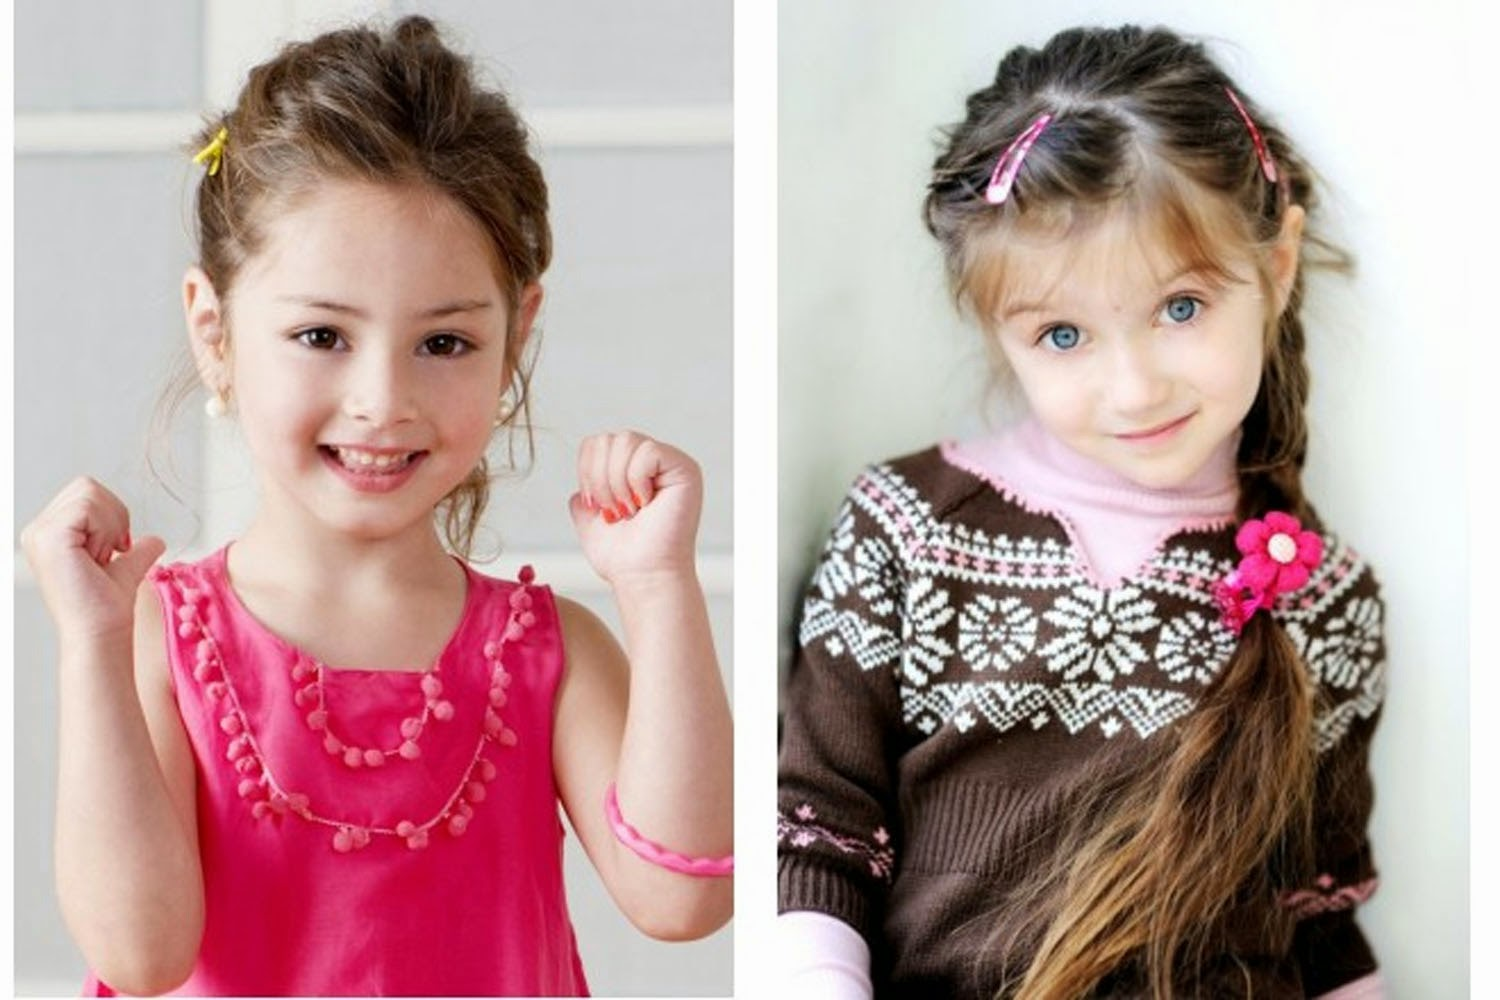 Kids New 2014 Hairstyles  Latest Hairstyles For Kids Girls